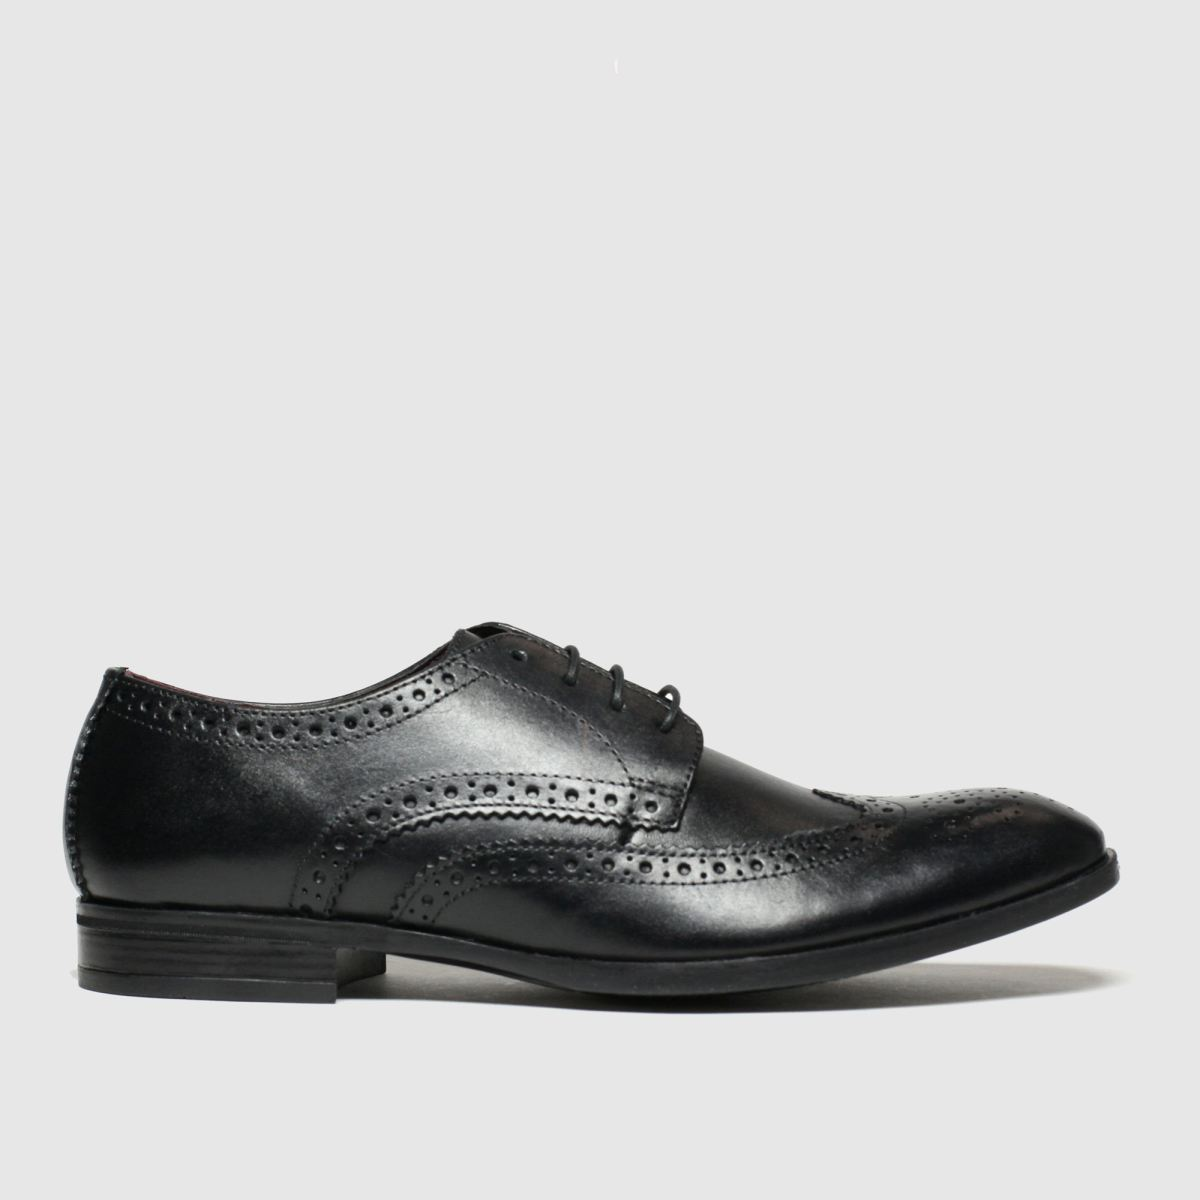 Schuh Black Brunel Brogue Shoes